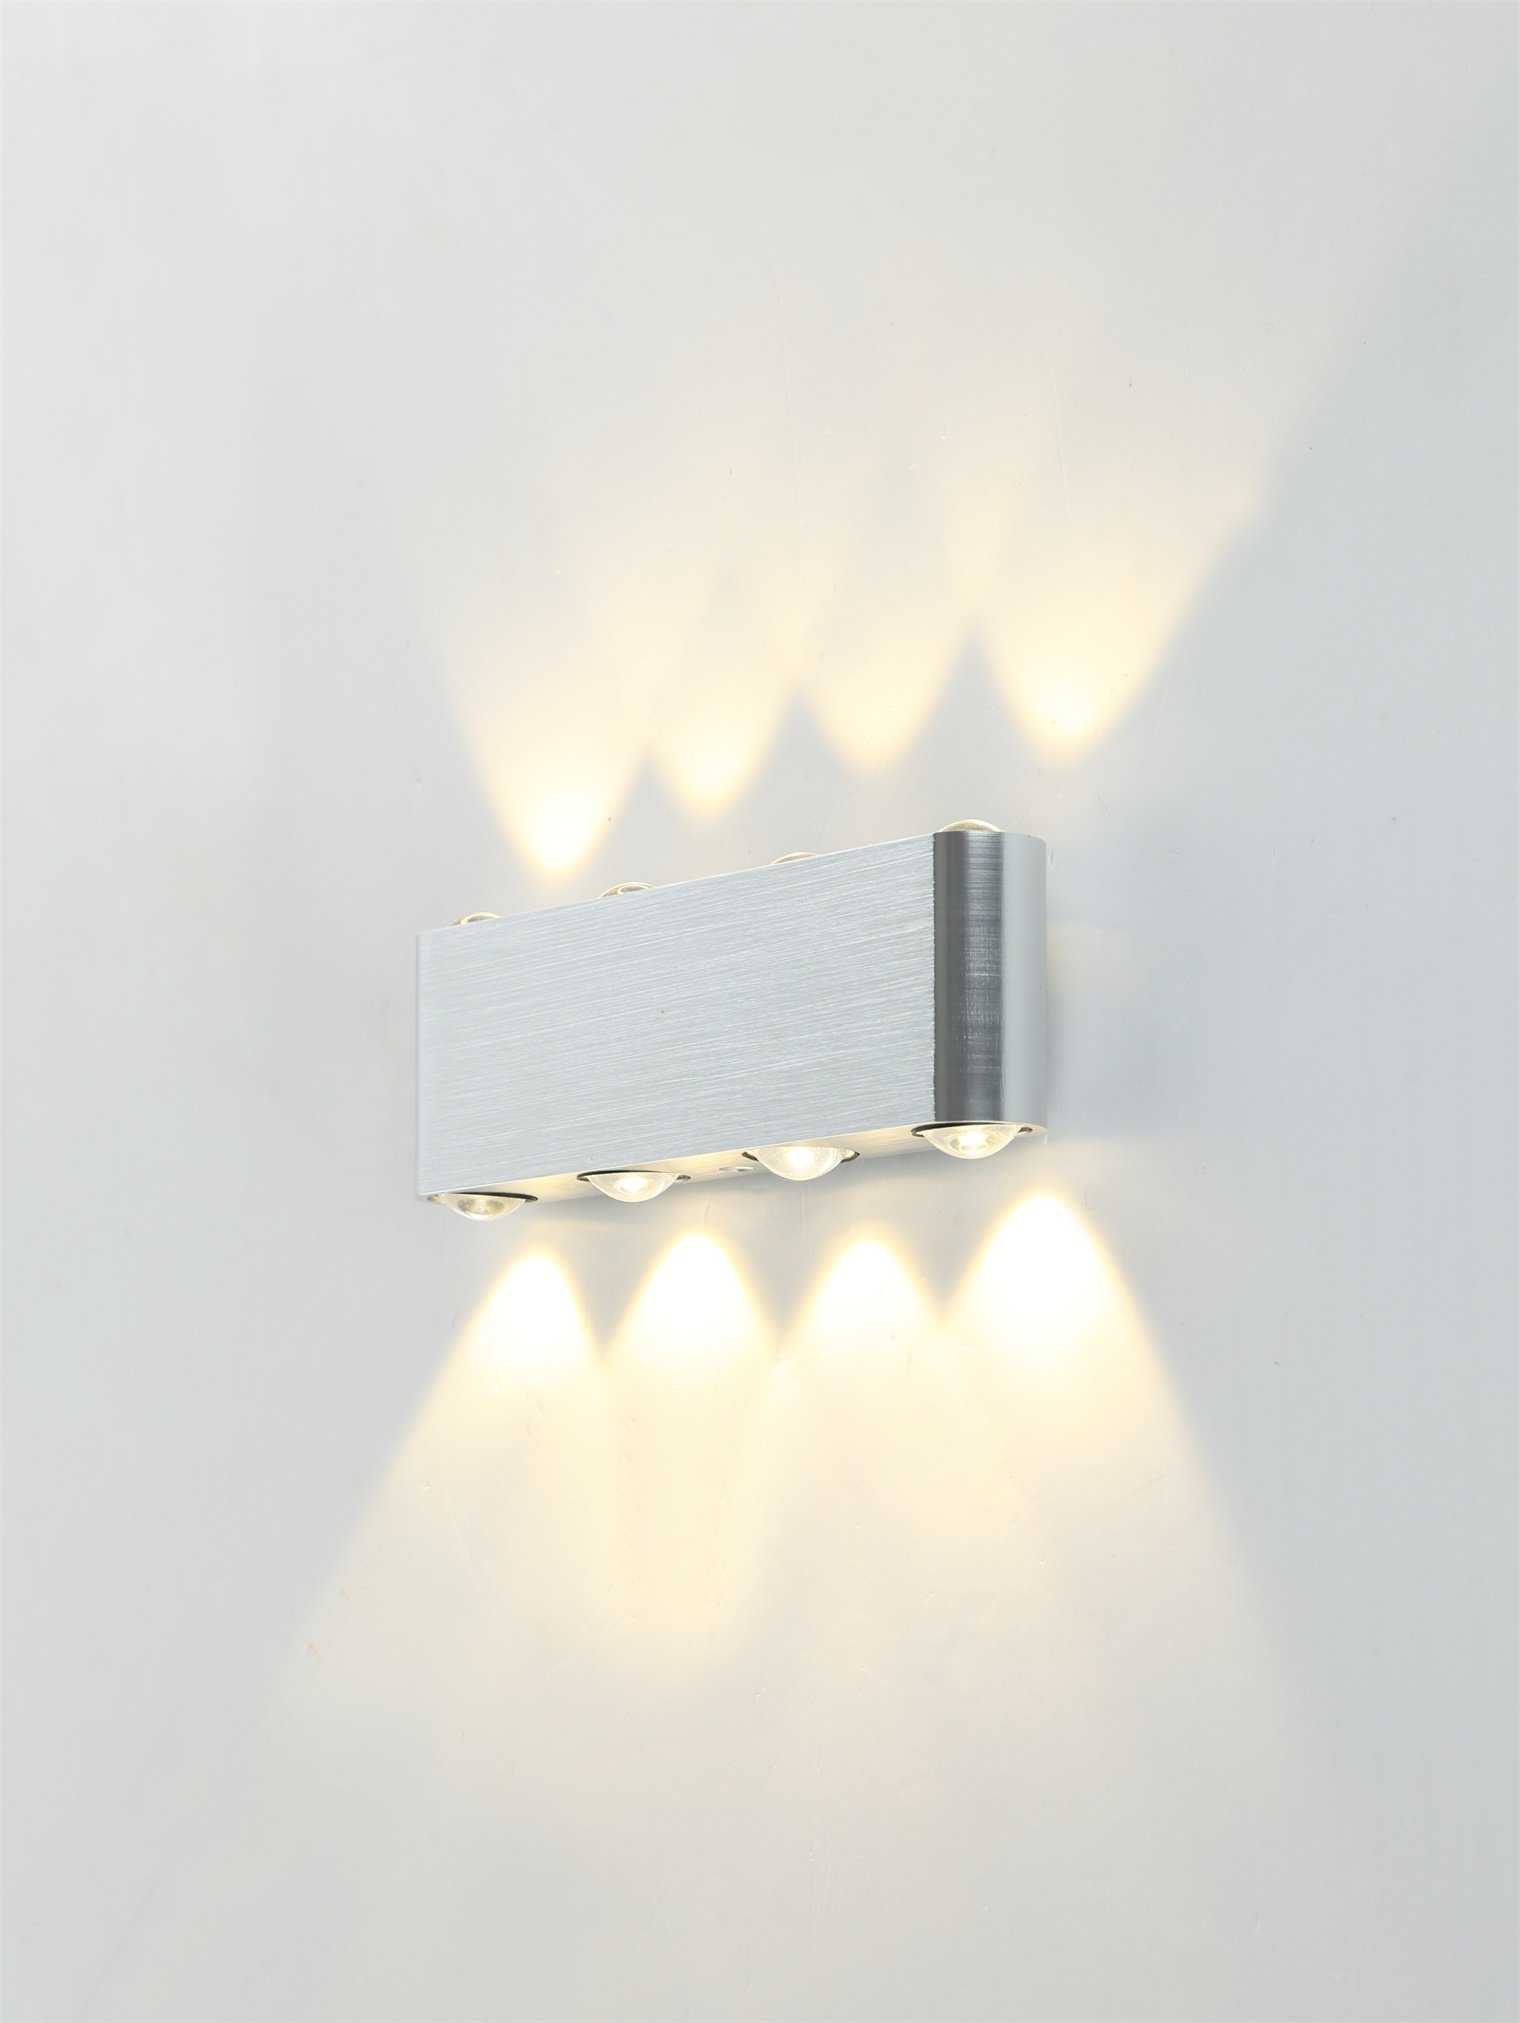 Quality 1W LED WALL LAMP 63892-8 Oem From China-Saintly